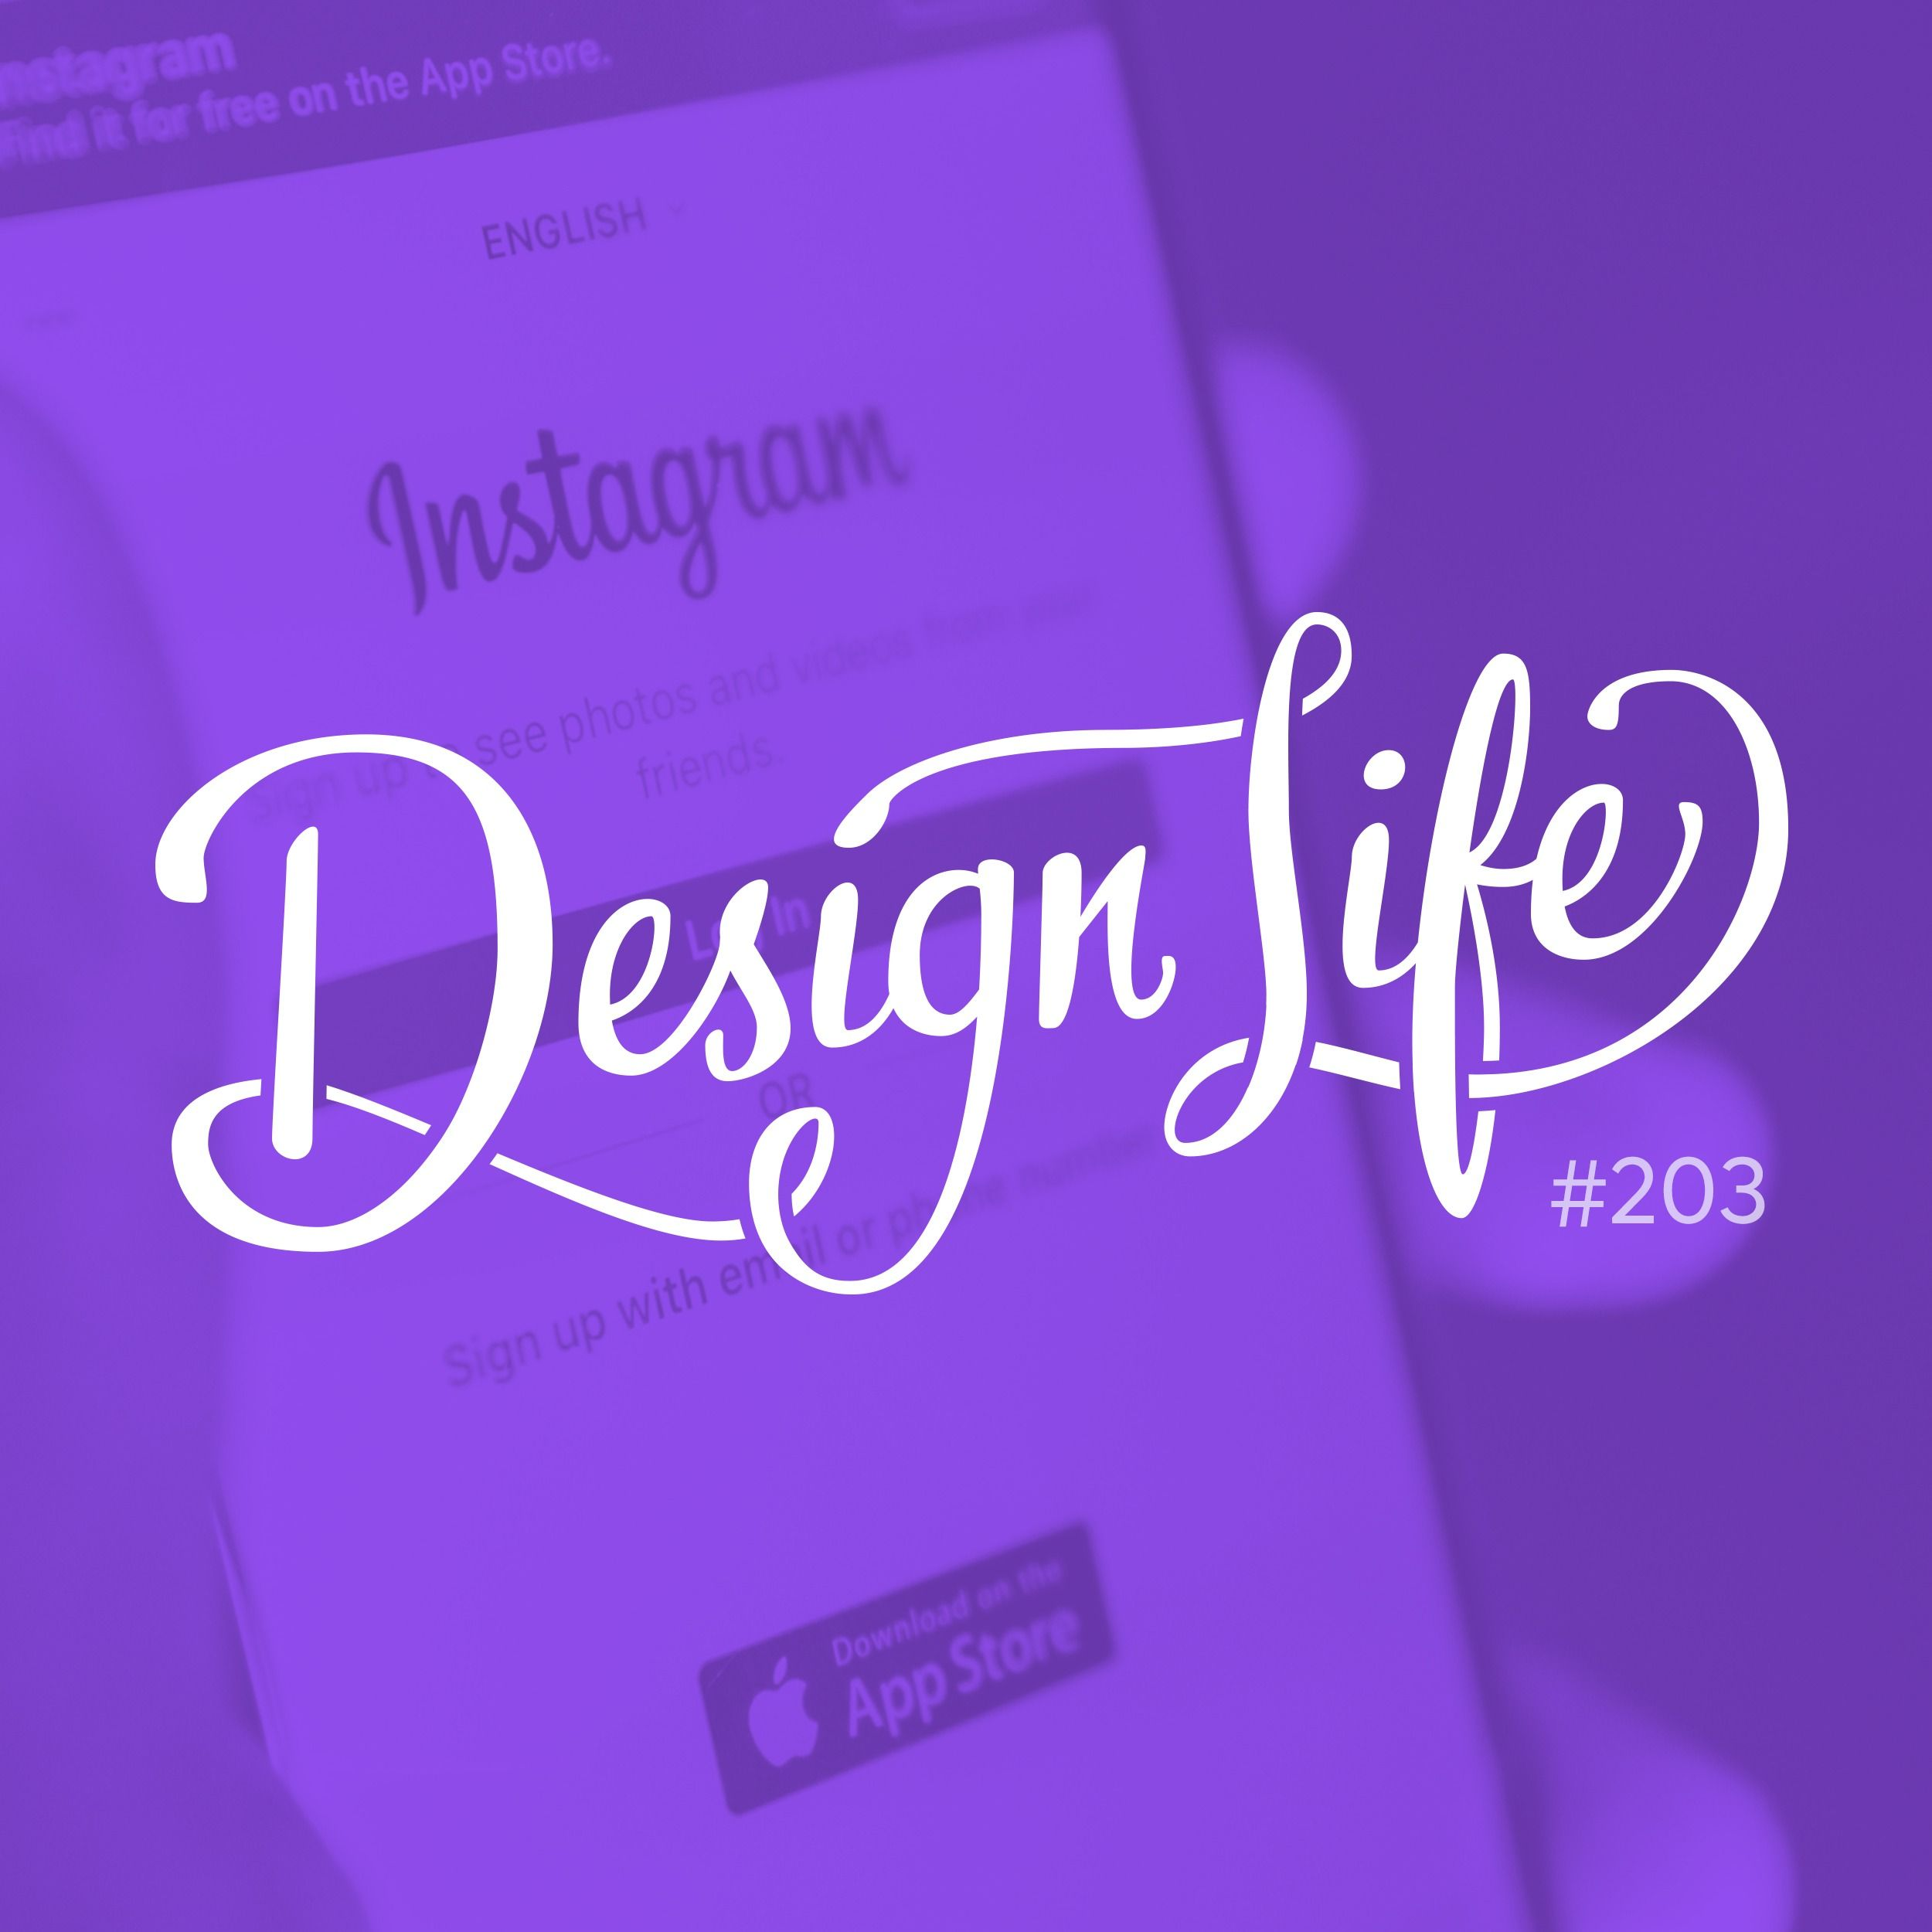 203: Running a design-focused Instagram